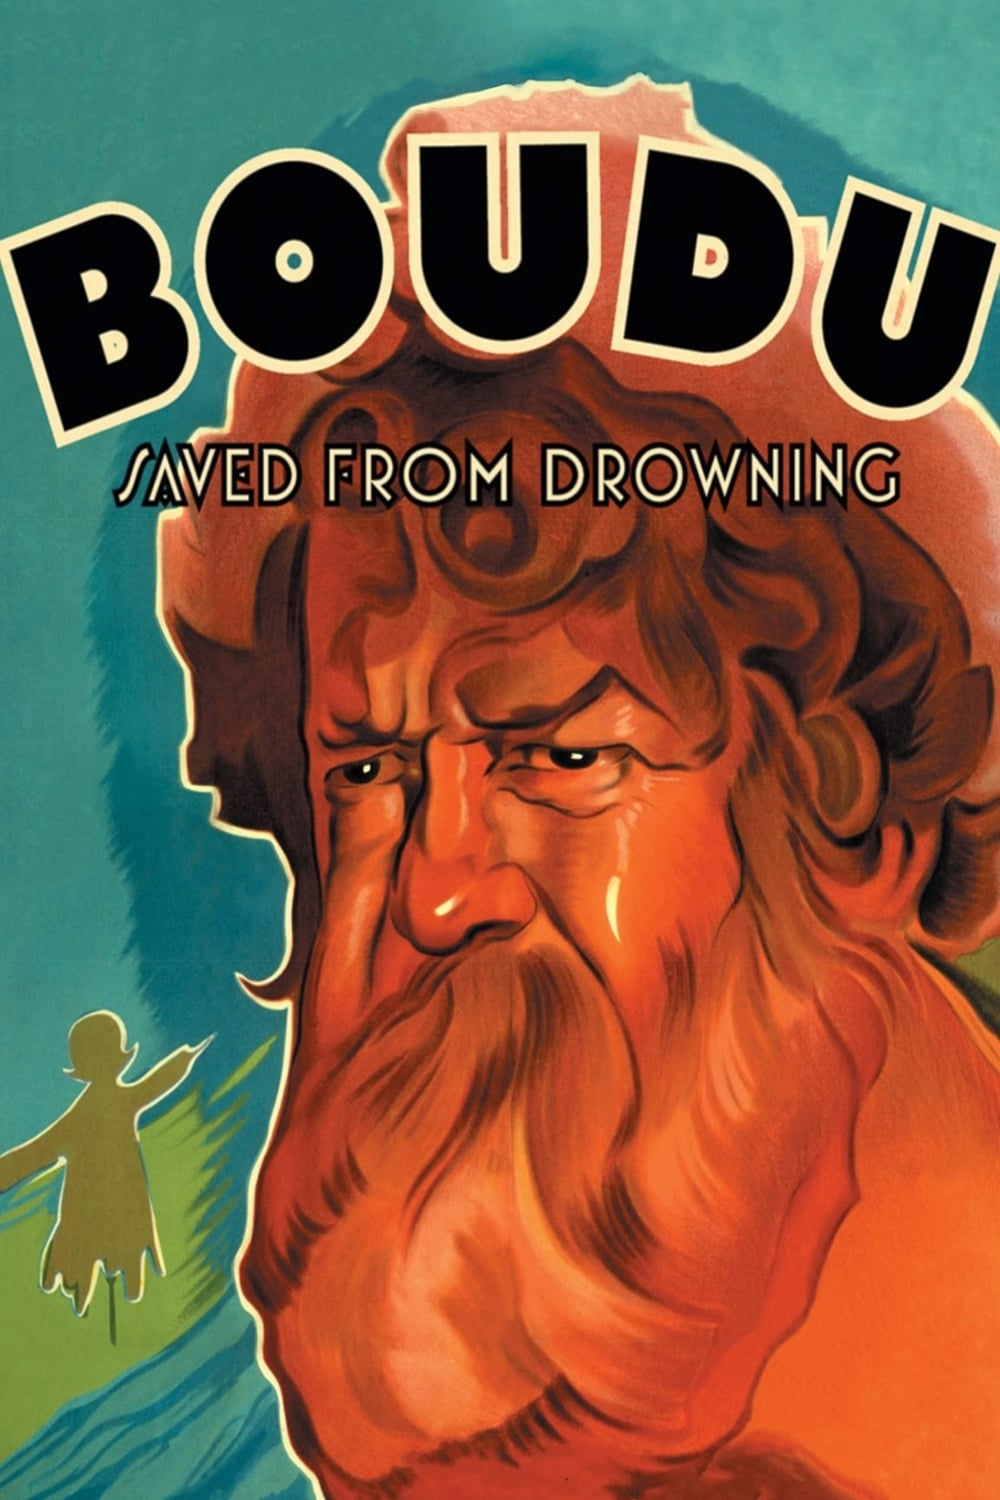 Boudu Saved from Drowning (1932)